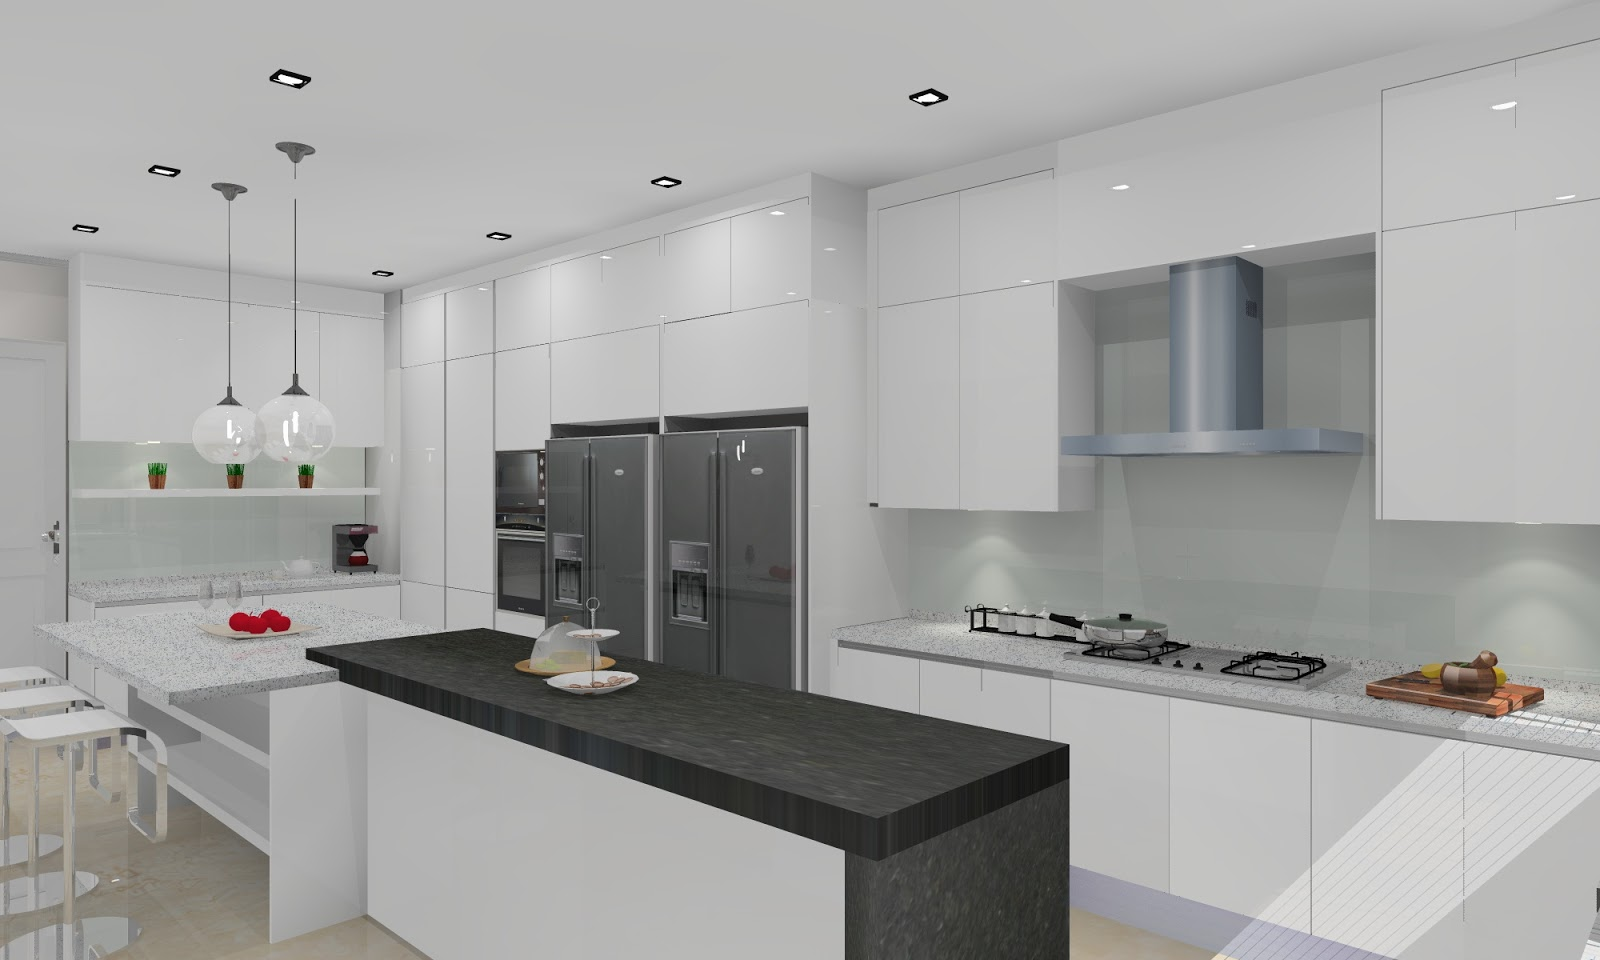 Full Kitchen Cabinets Who Makes The Best Meridian Interior Design And In Kuala